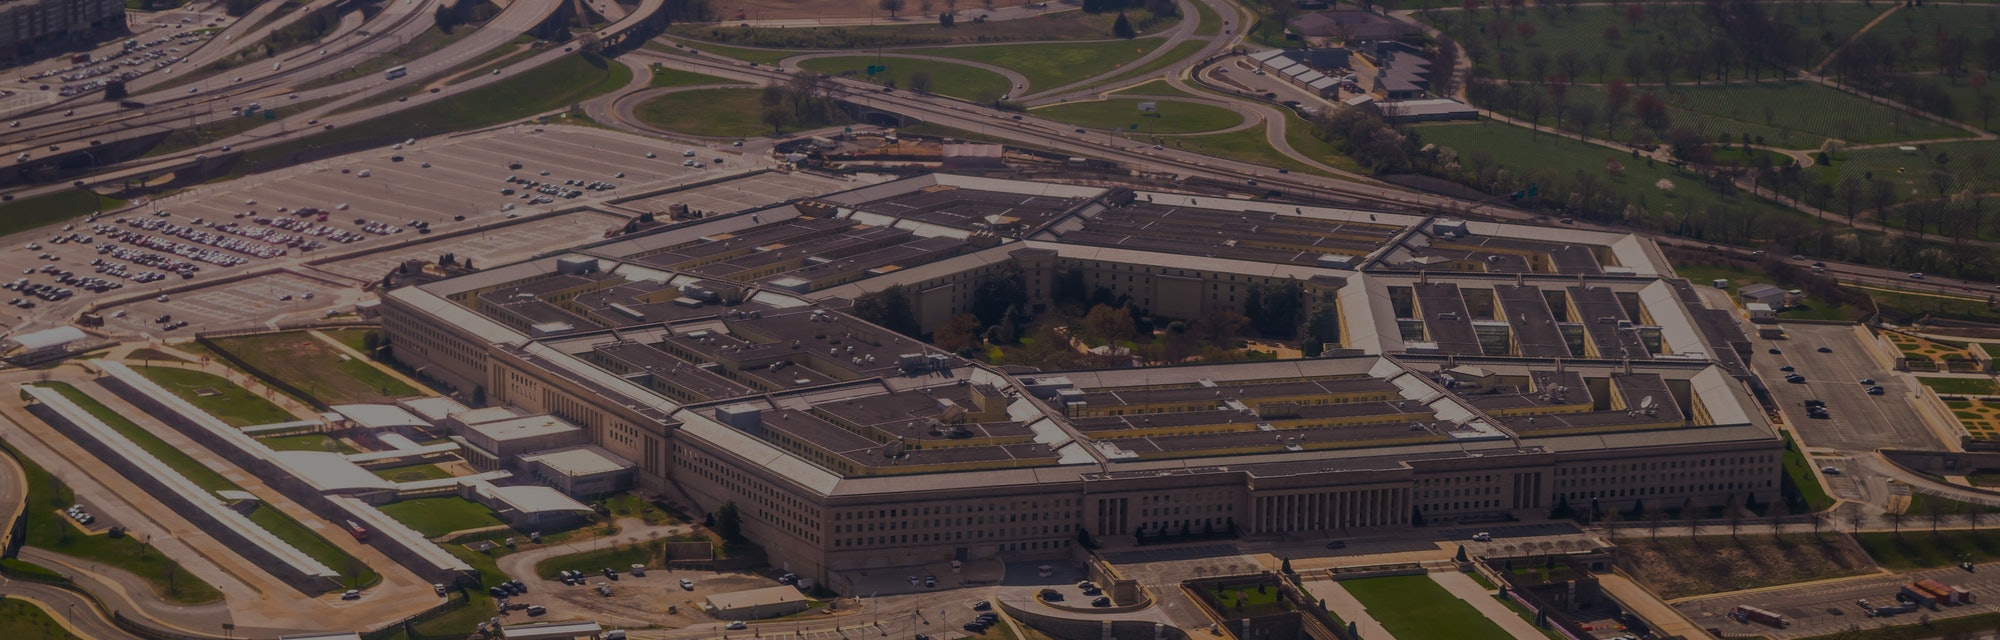 The Pentagon from above in Washington, DC